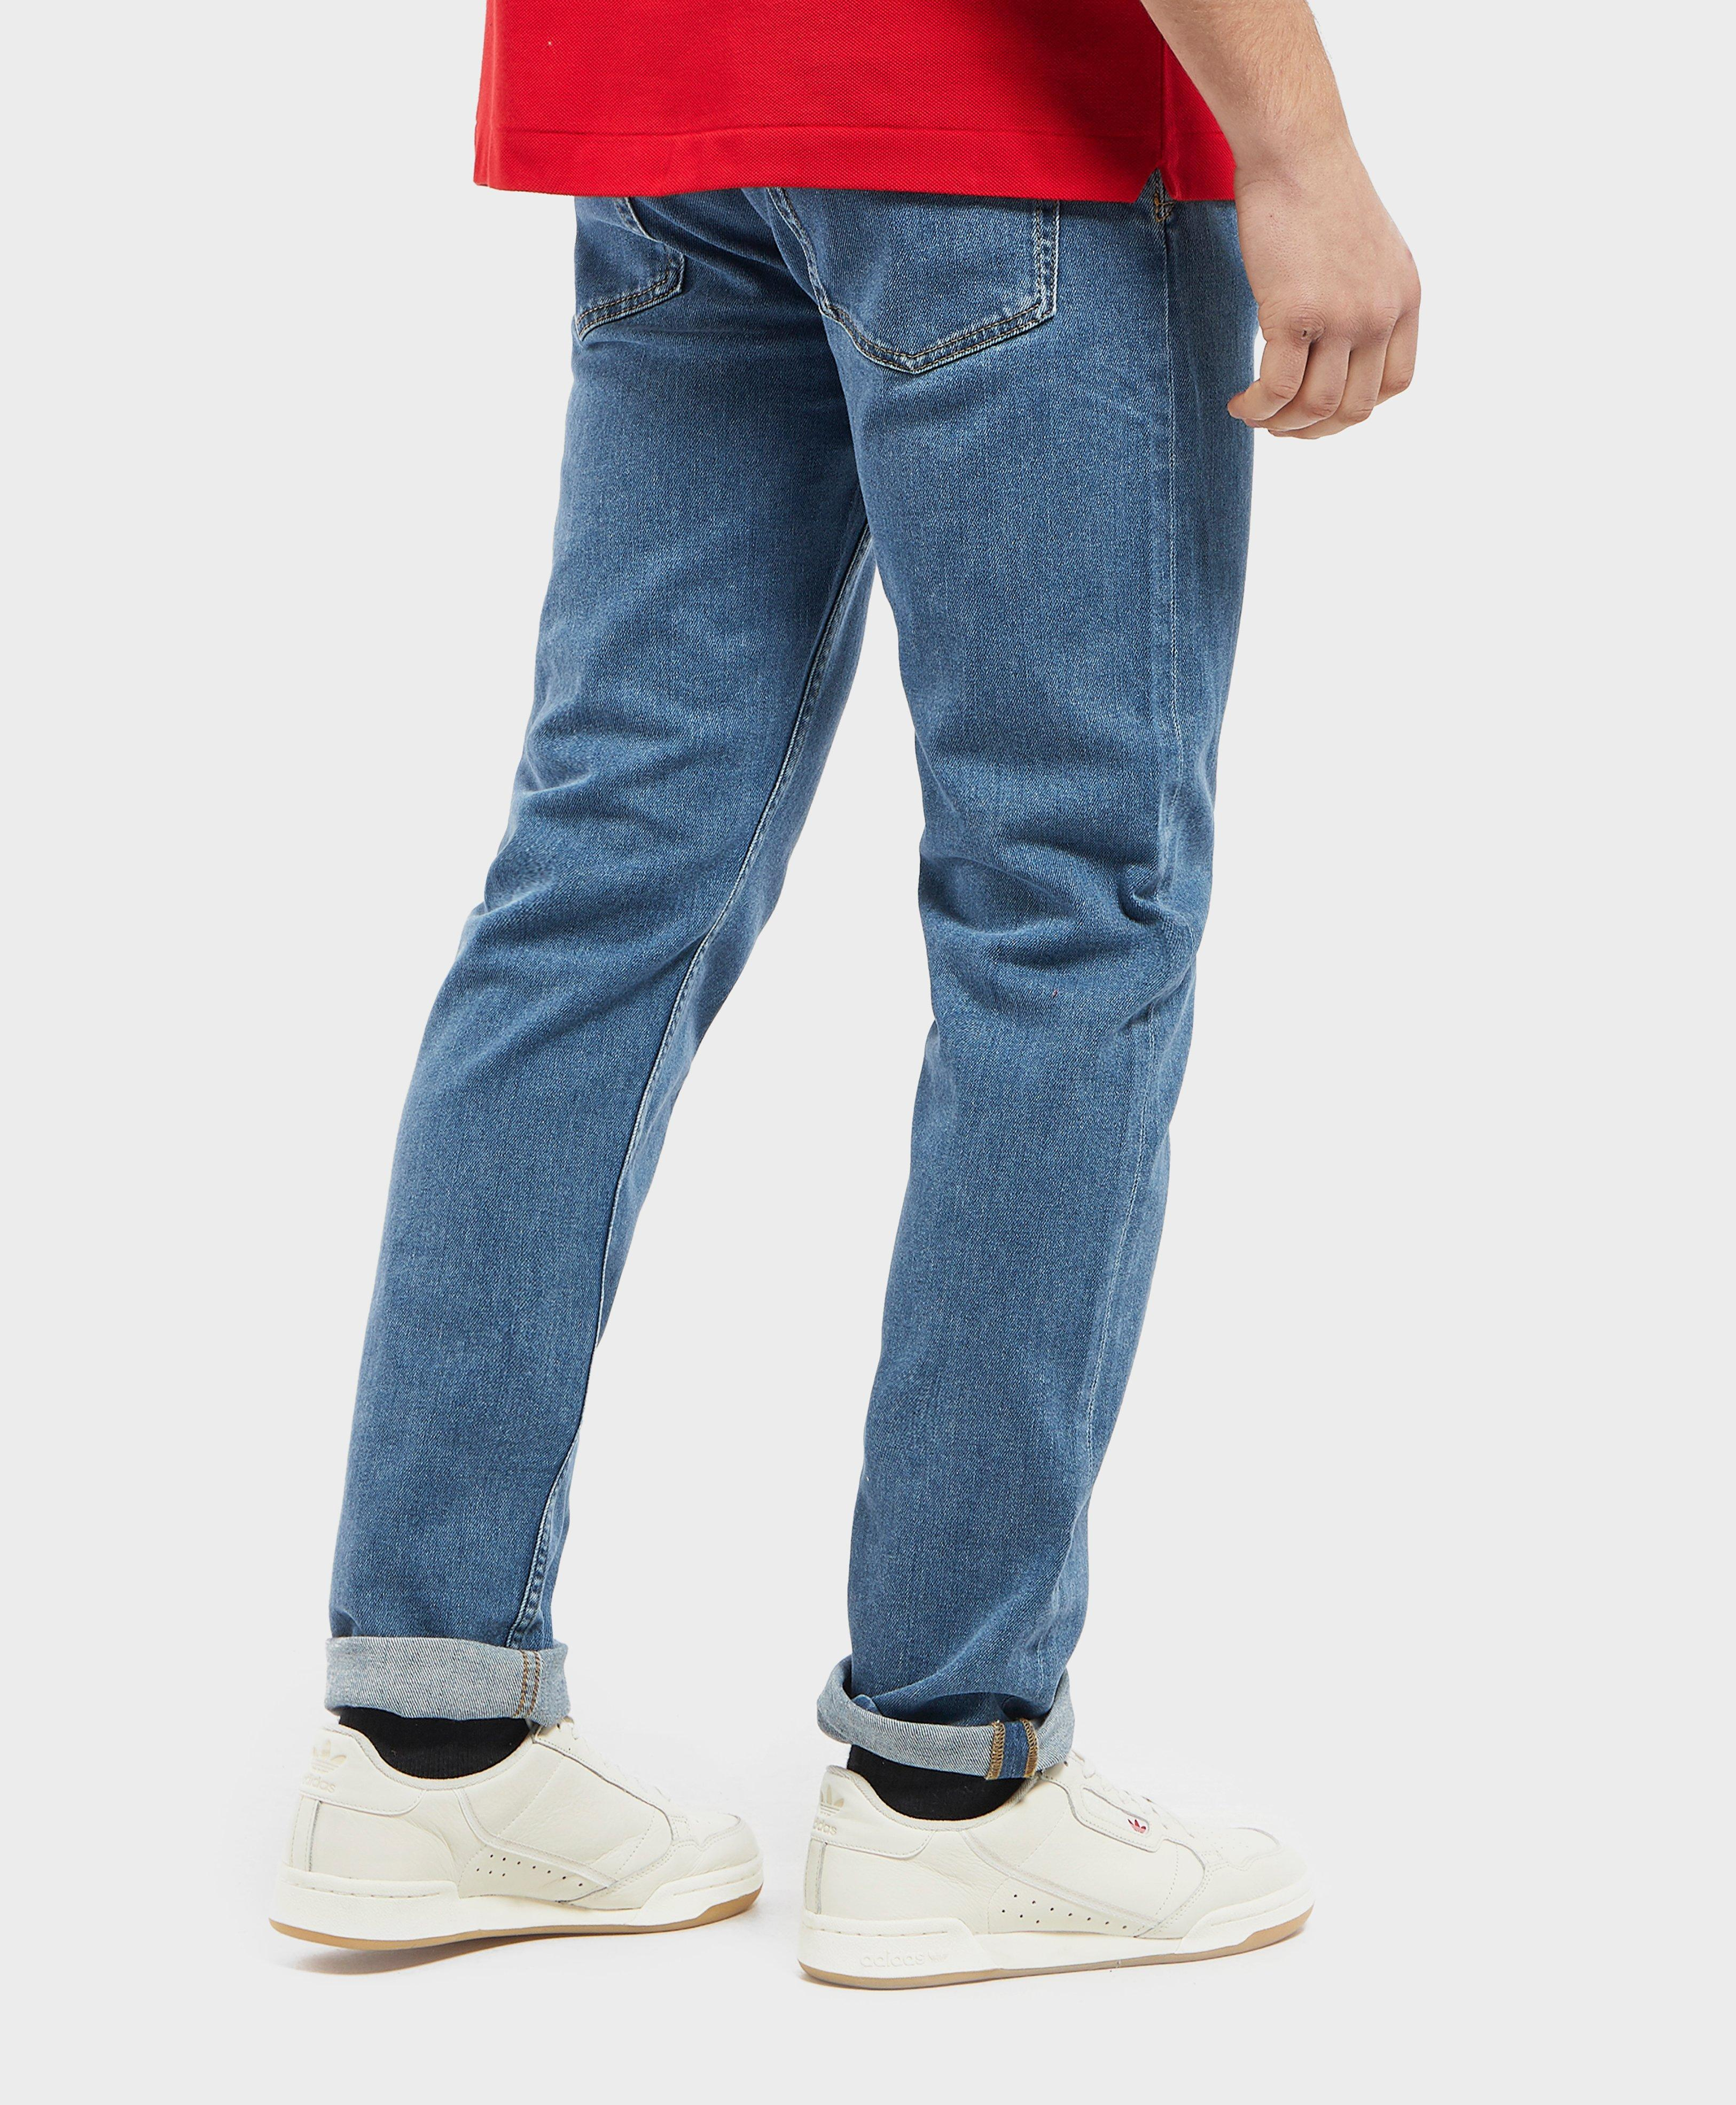 e179718a Lacoste Blue Slim Tapered Croc Jeans for men